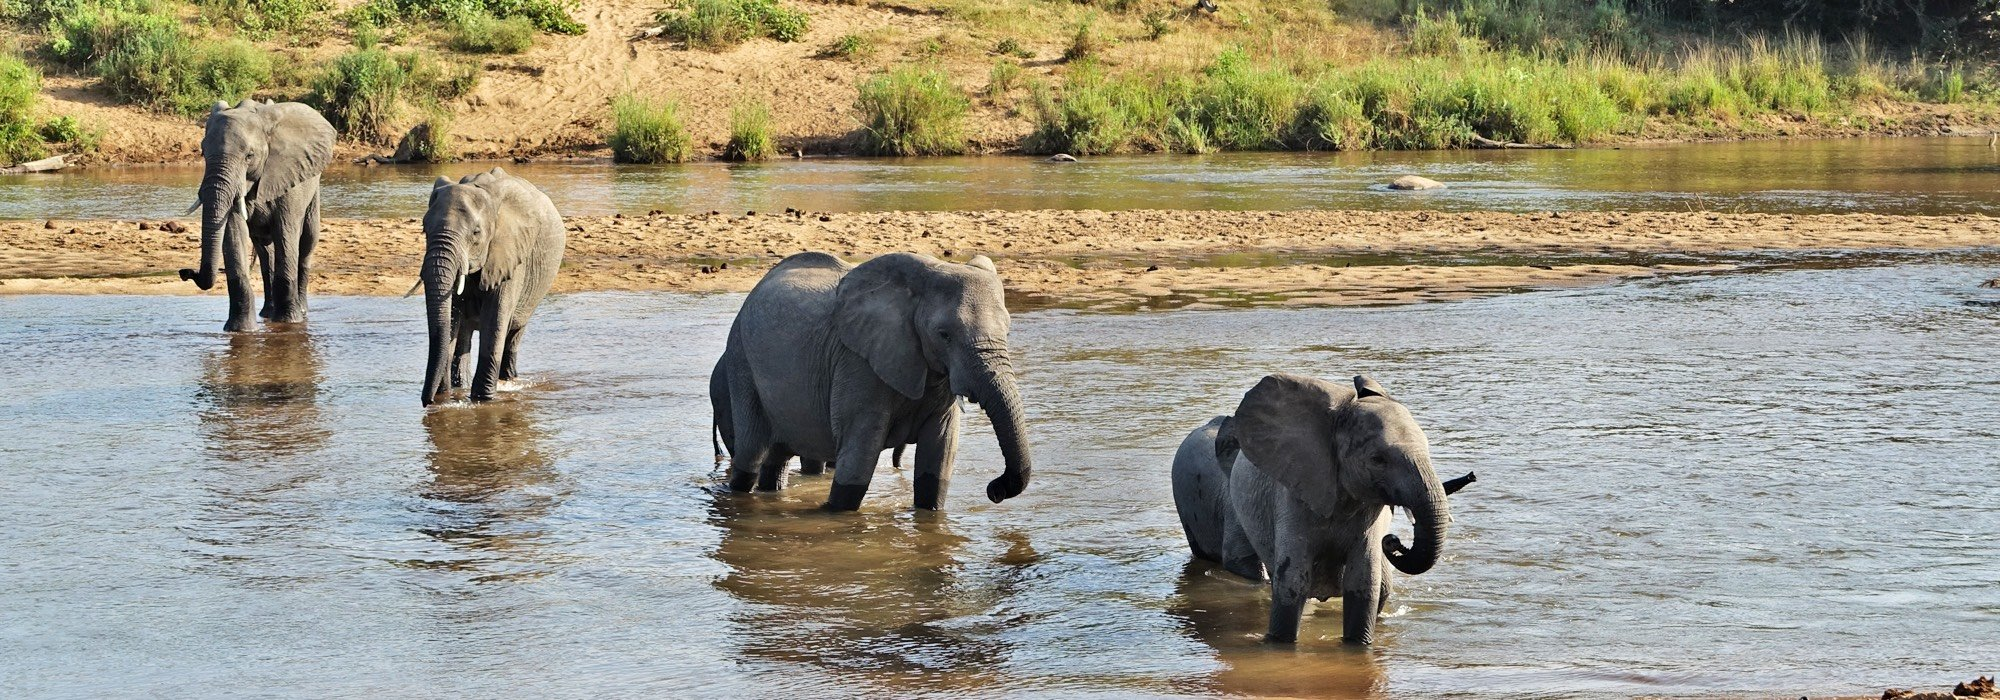 Elephants at Thornybush Game Reserve